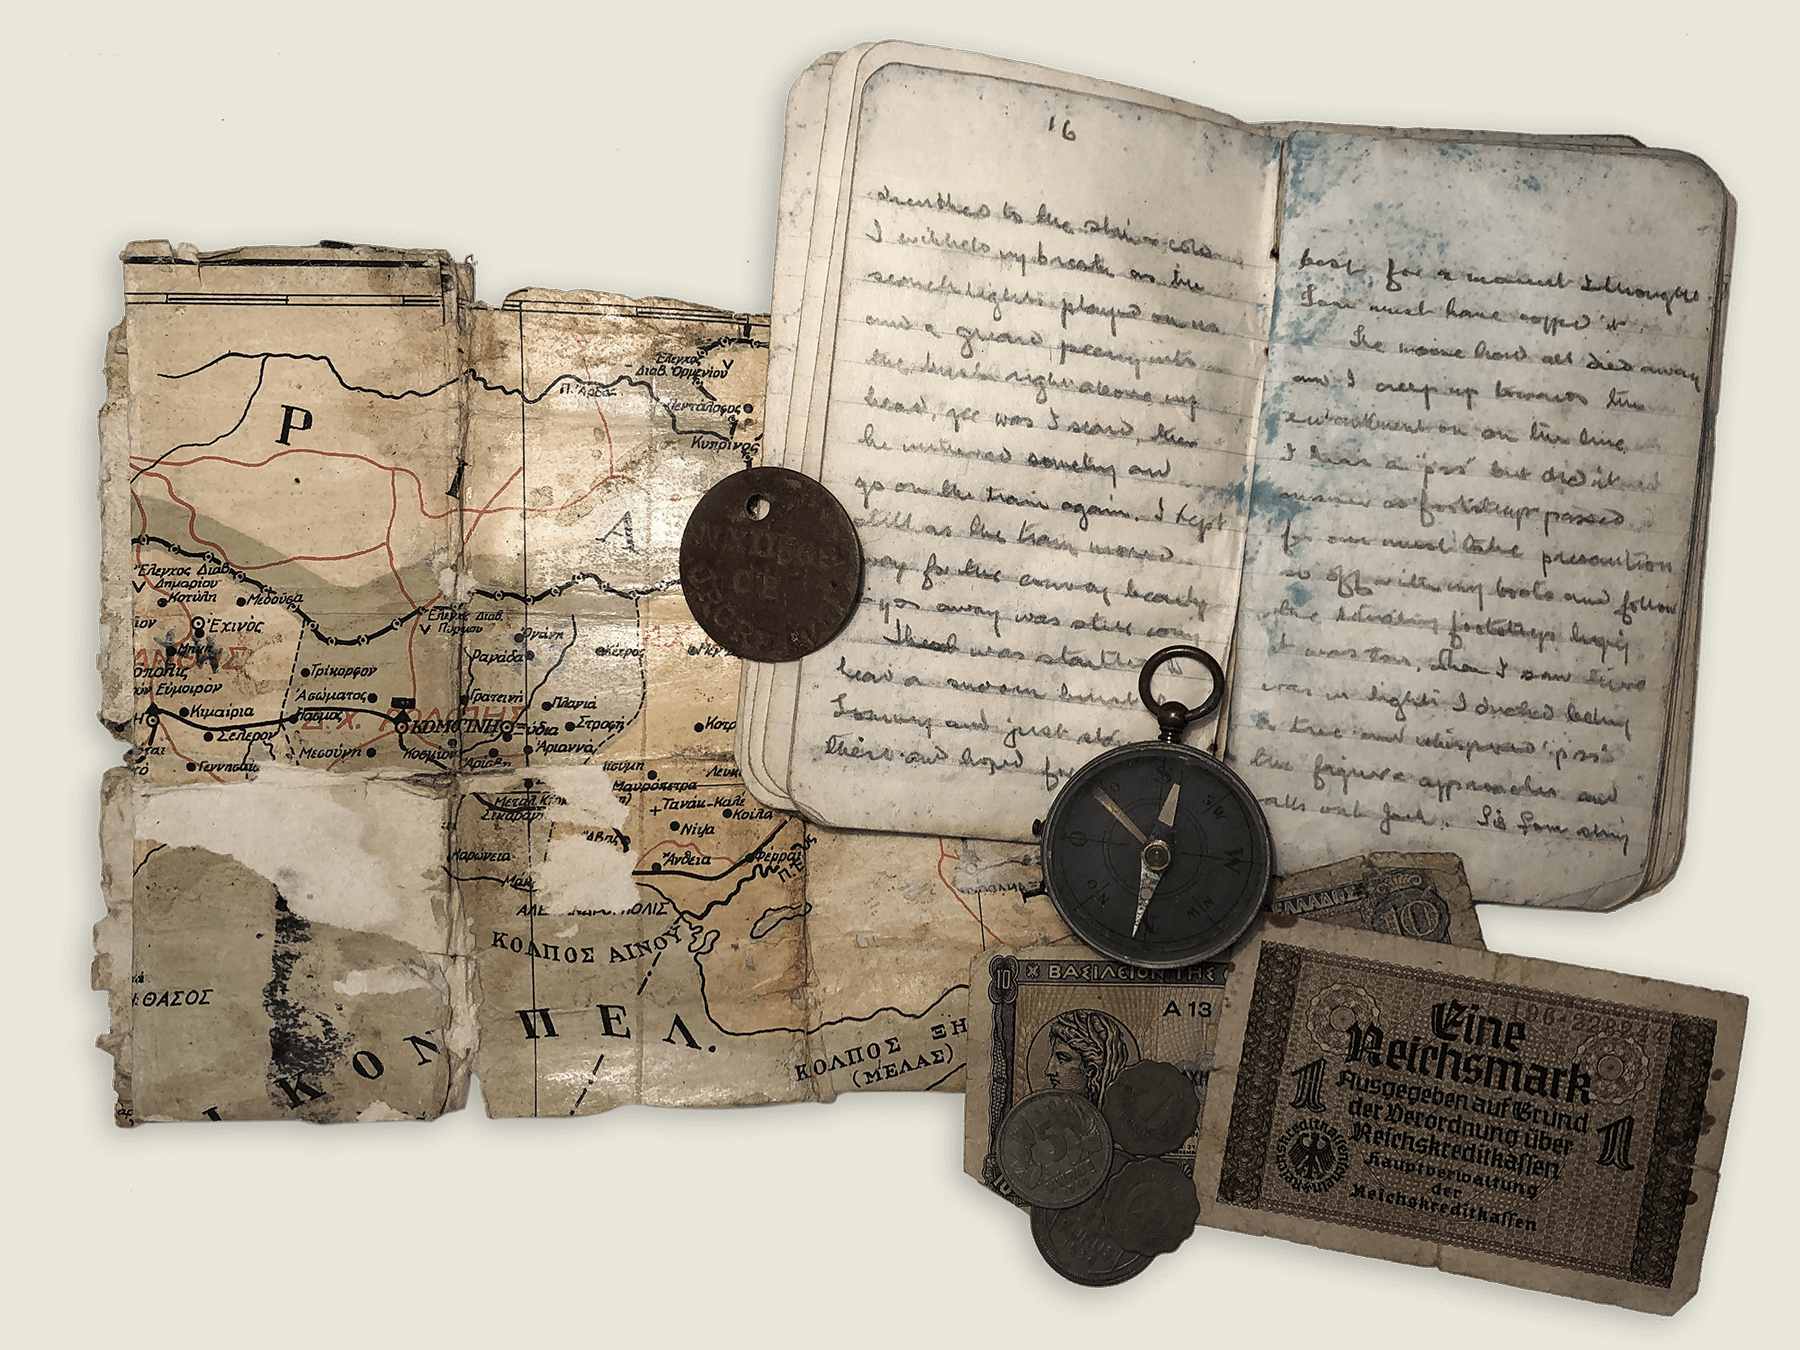 Jack's escape map, compass, diary, ID tag